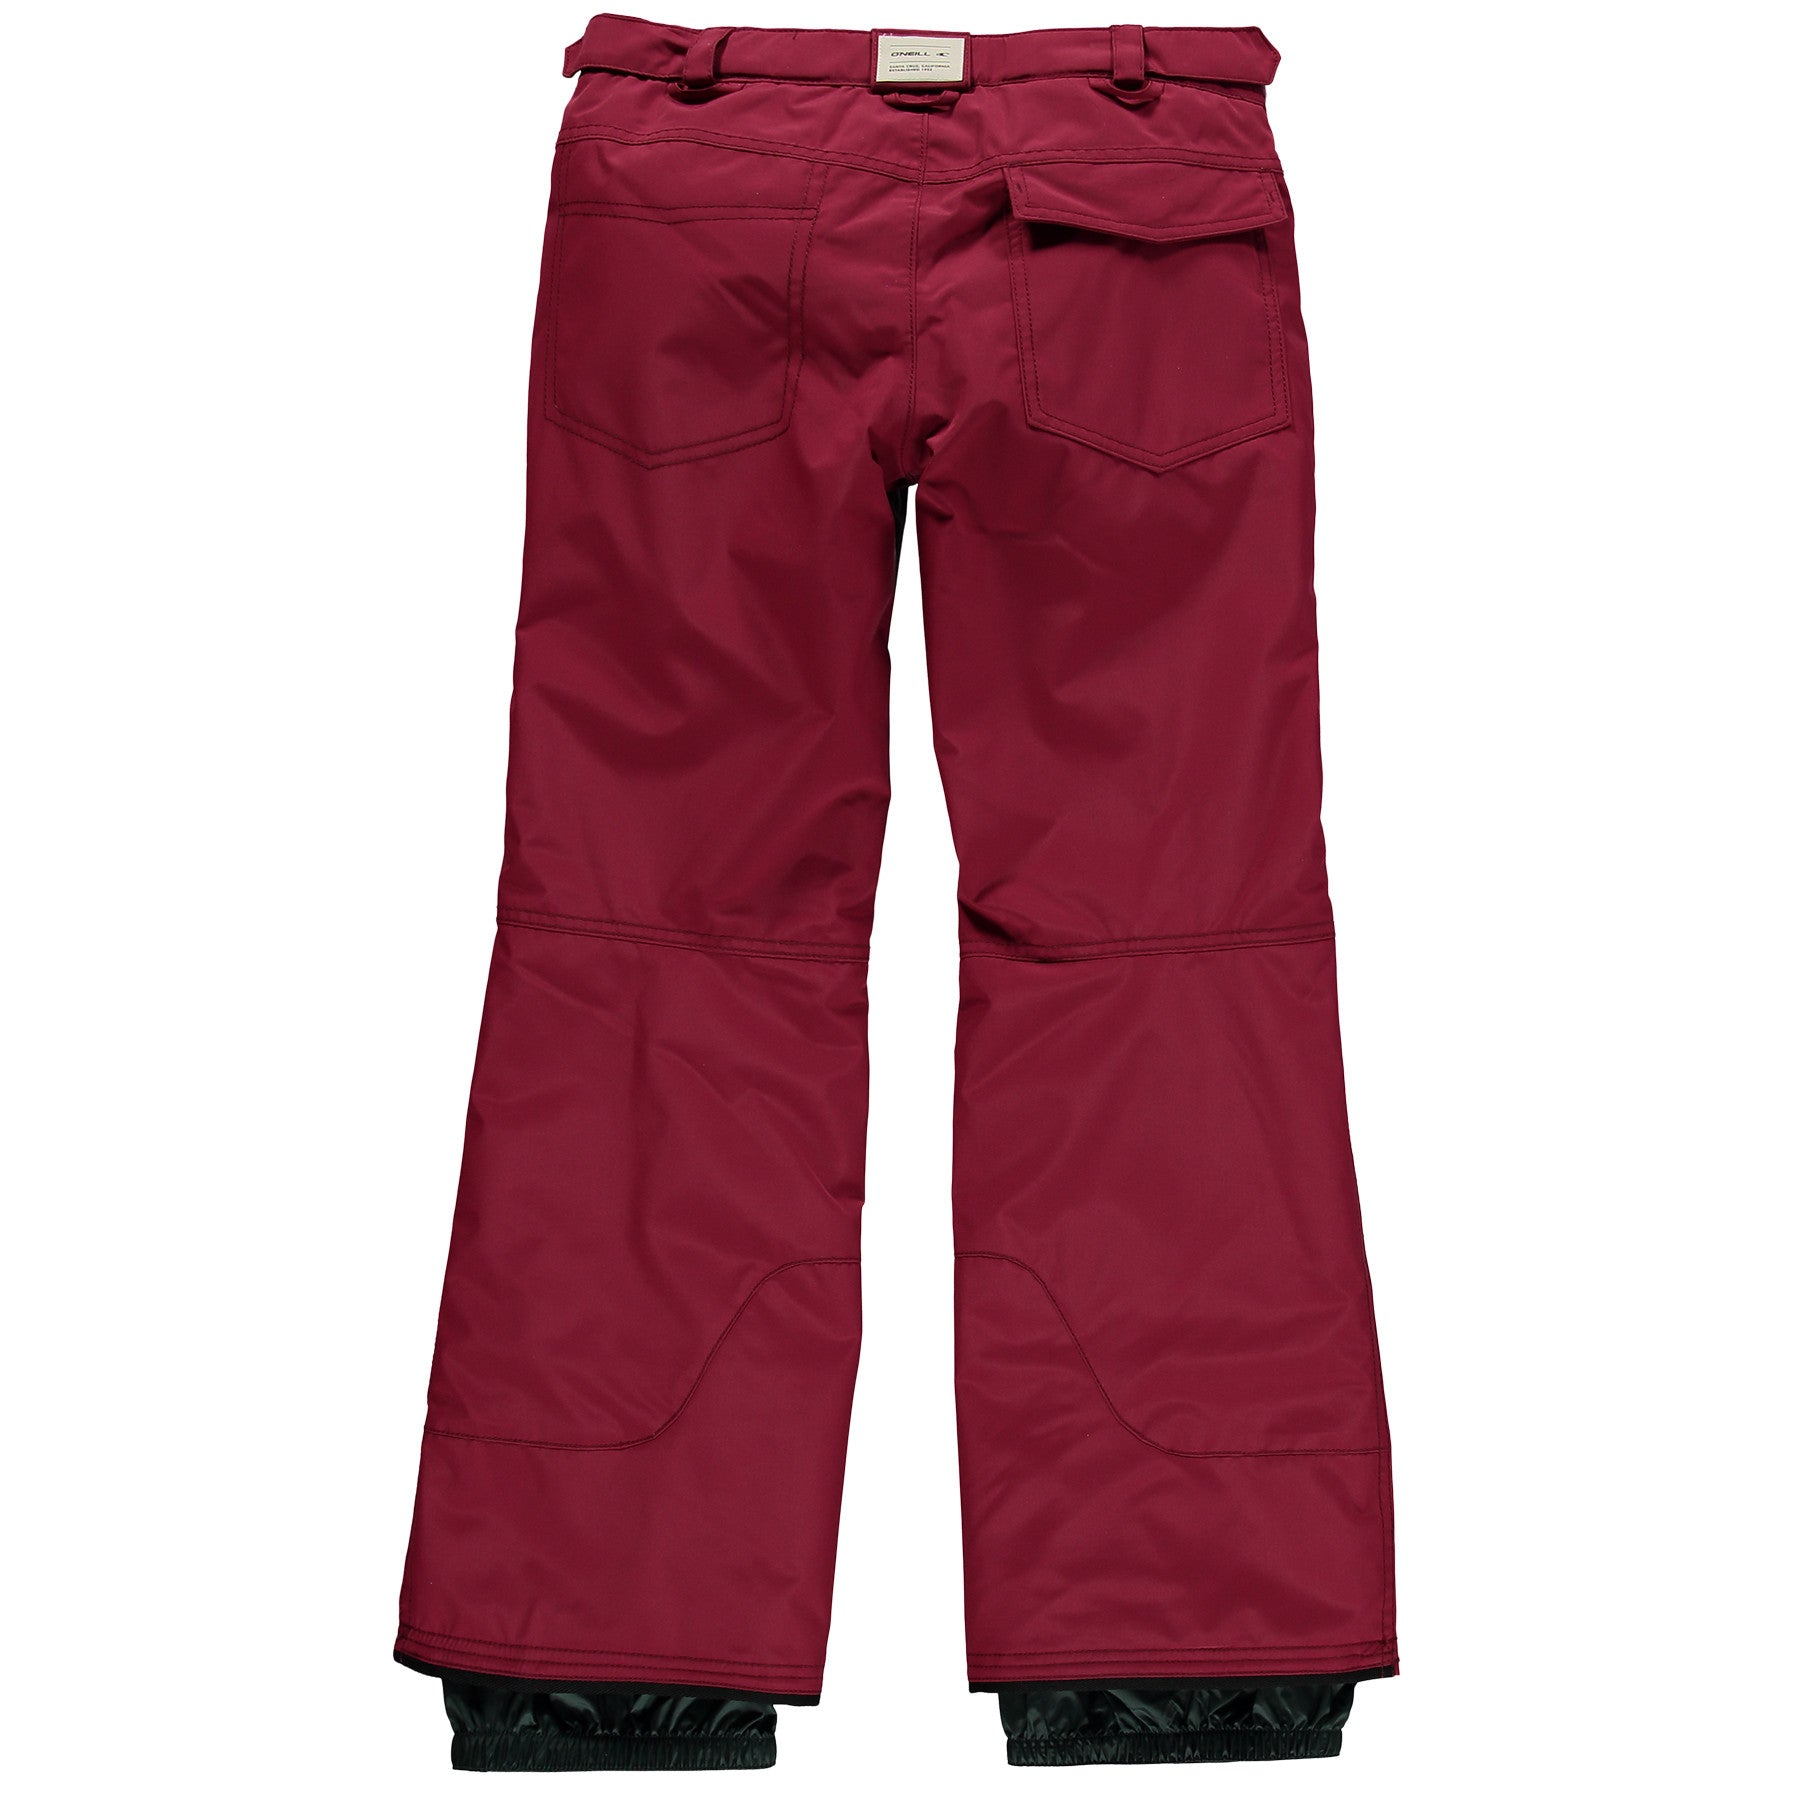 Kids Charm Pants Passion Red - Stoked Boardshop  - 2